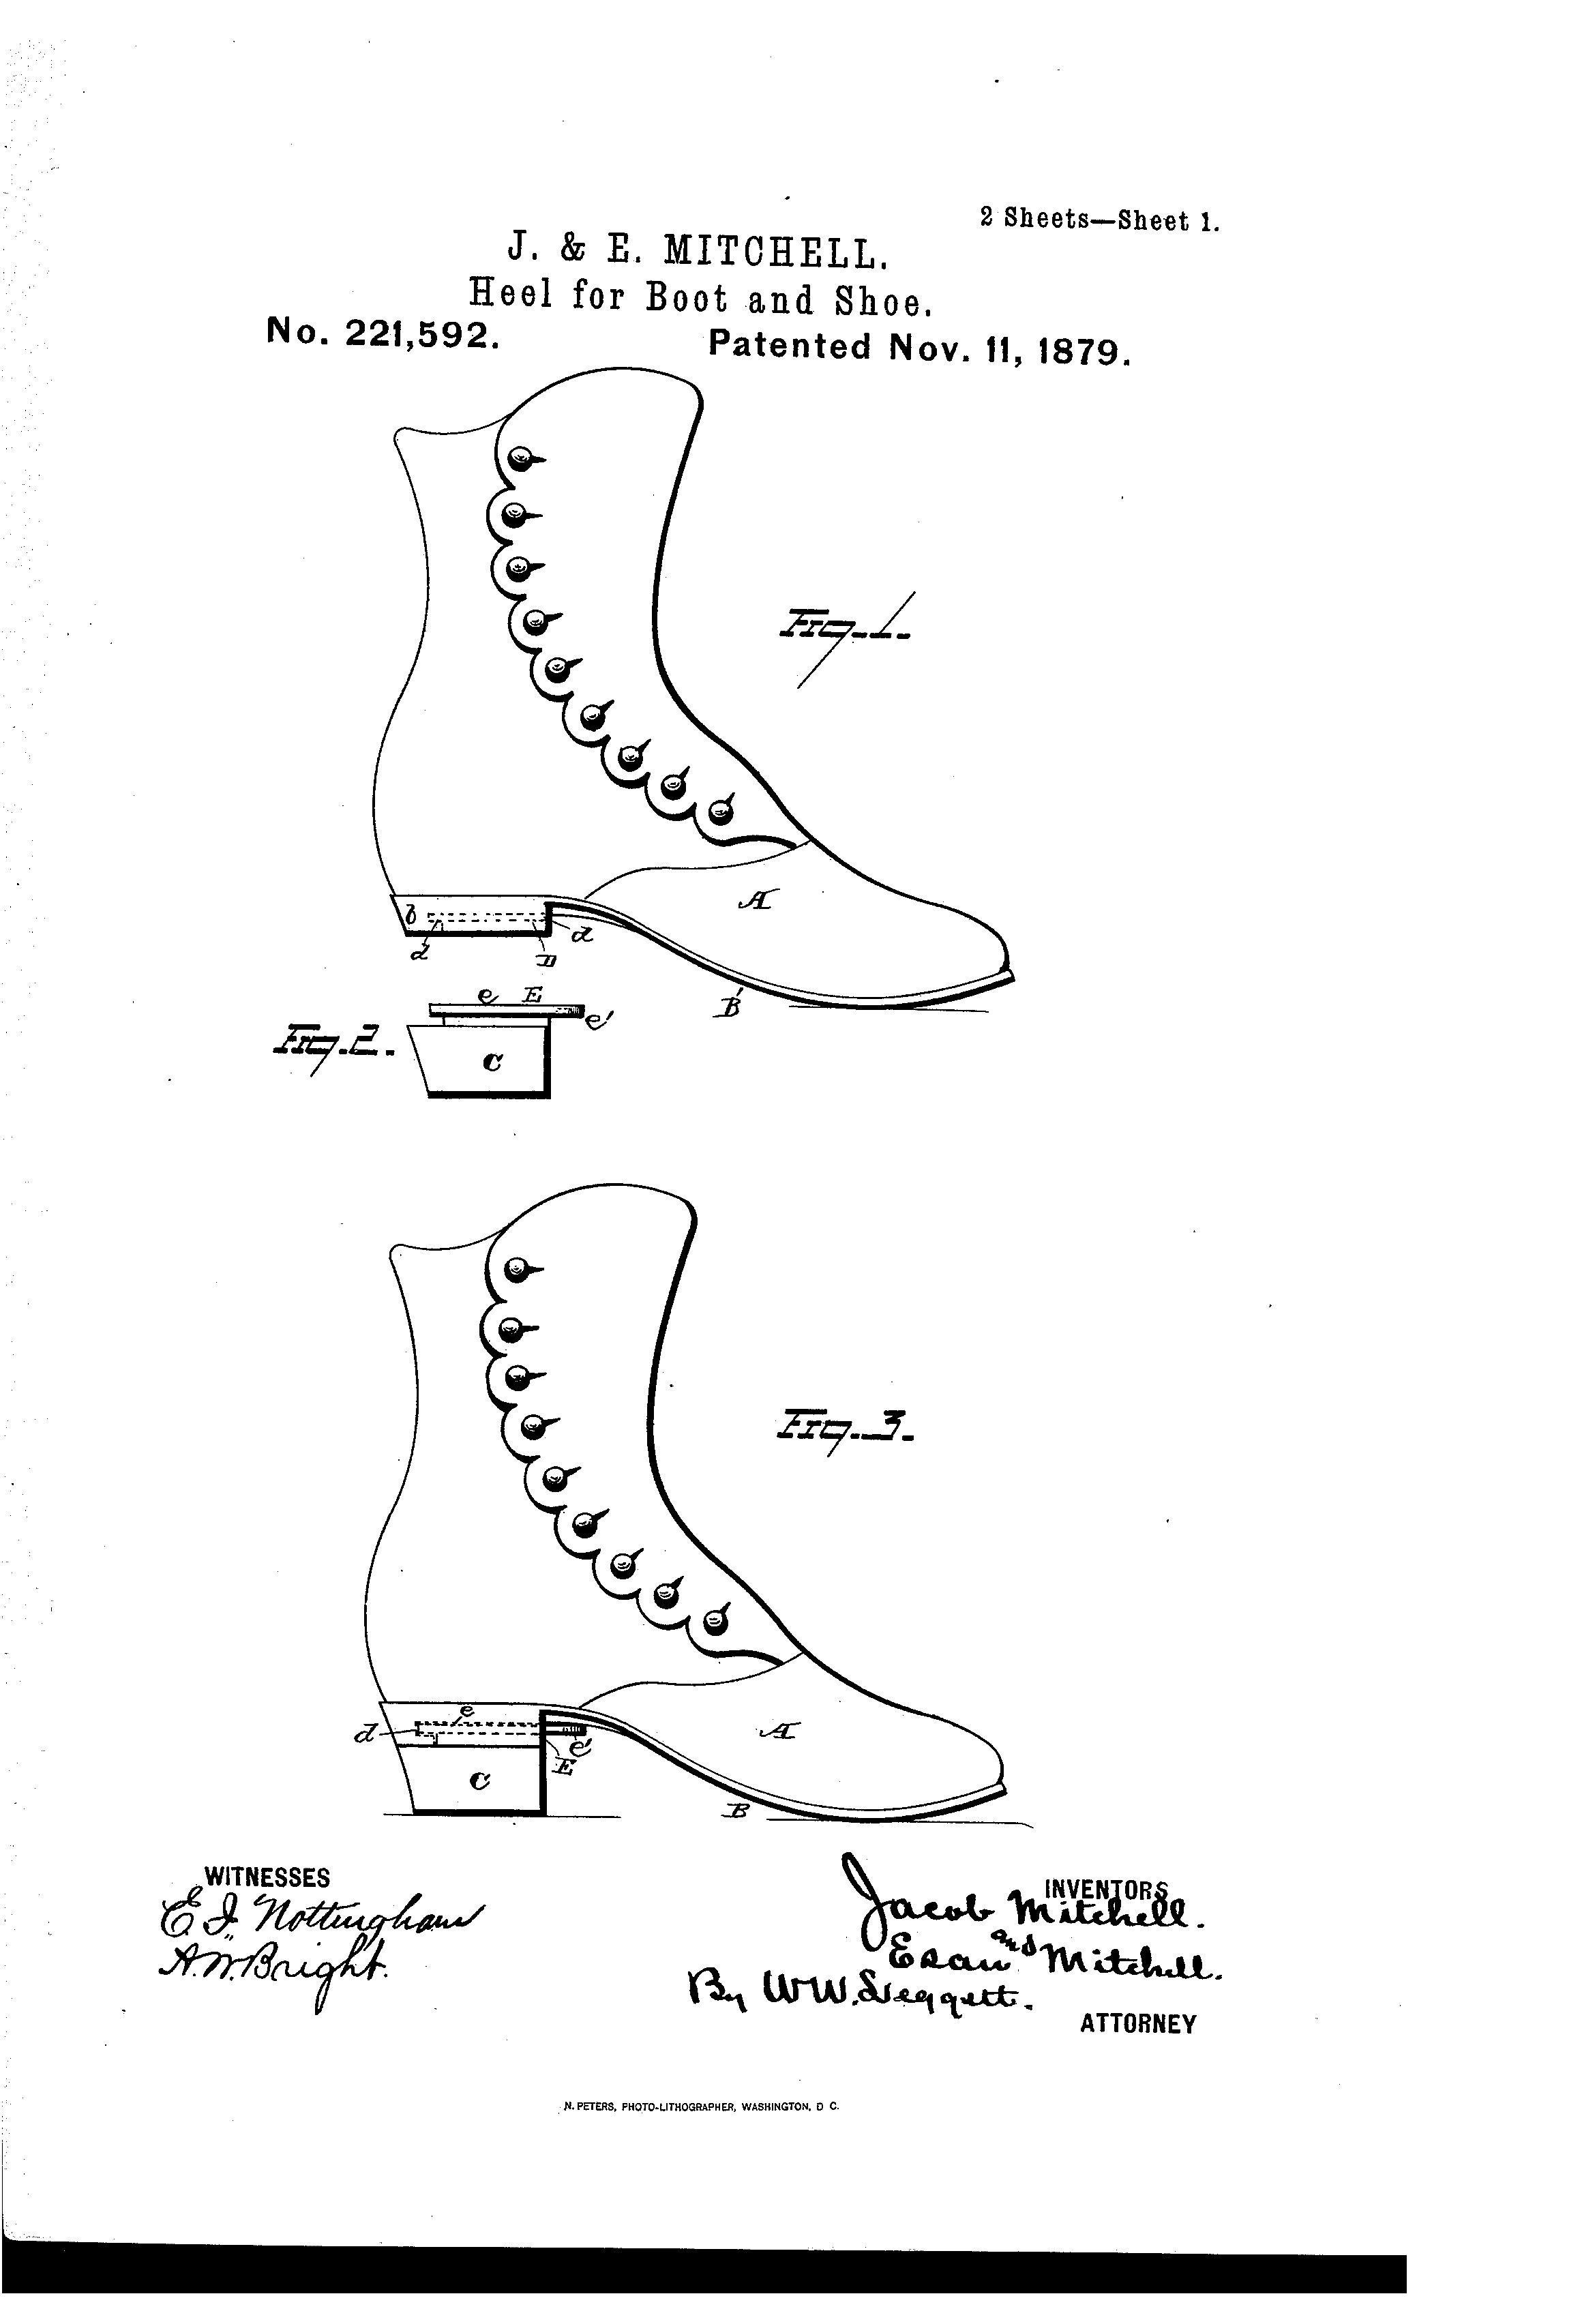 patent us221592 improvement in heels for boots and shoes Types of Foot Pain Diagram patent drawing